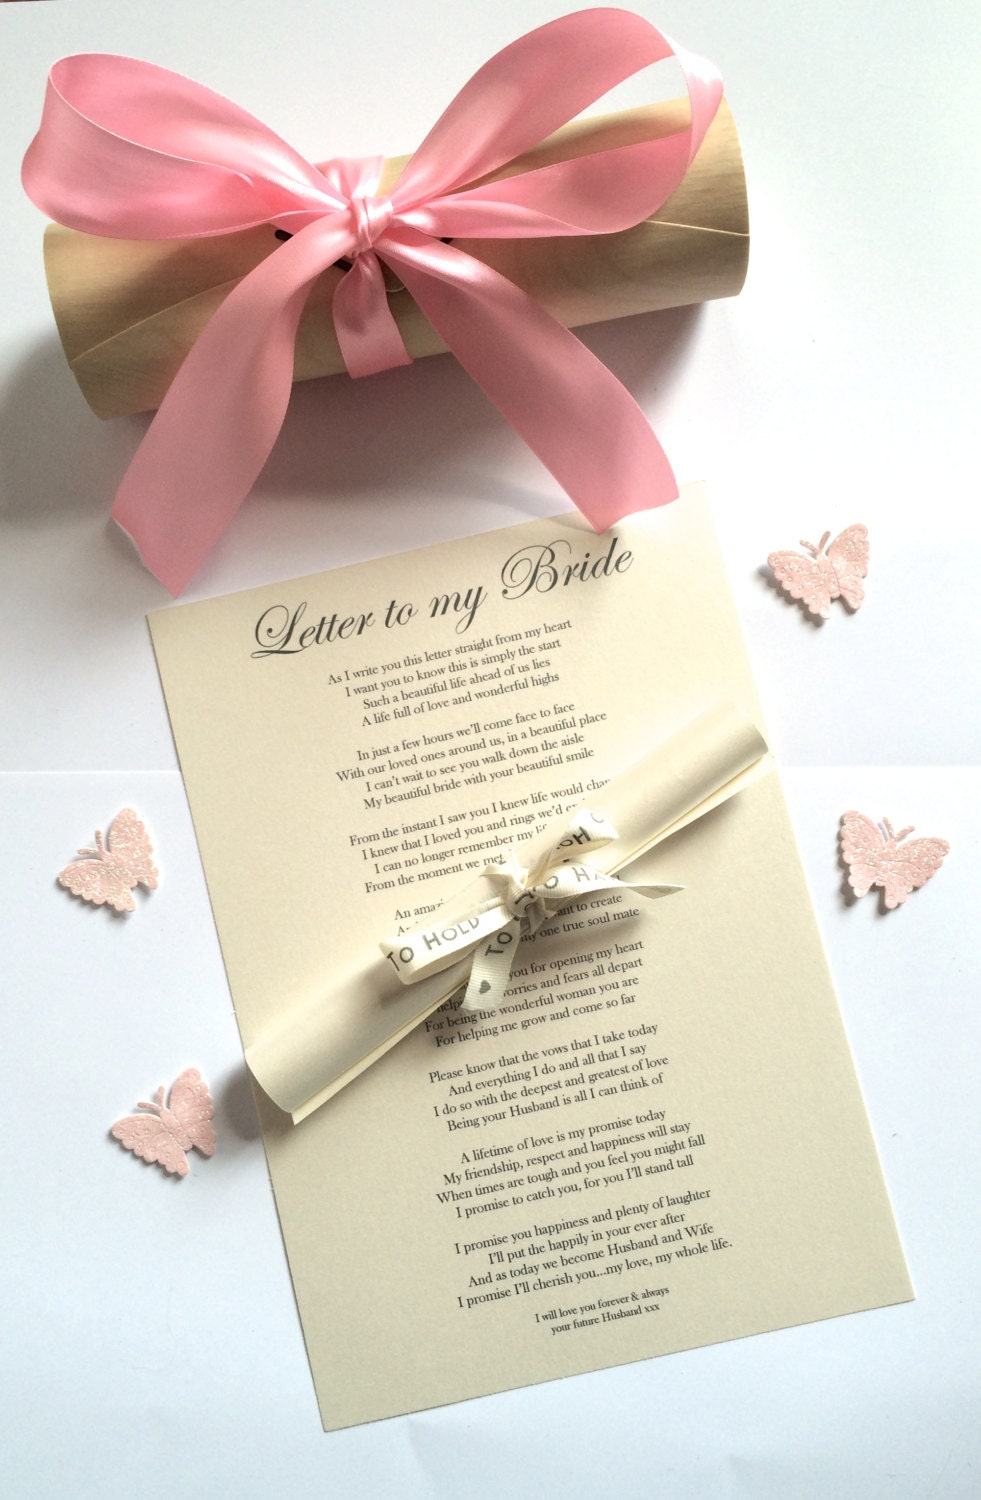 Wedding Gift To Bride From Groom : Wedding Gift for Bride from Groom on Wedding Day Personalised